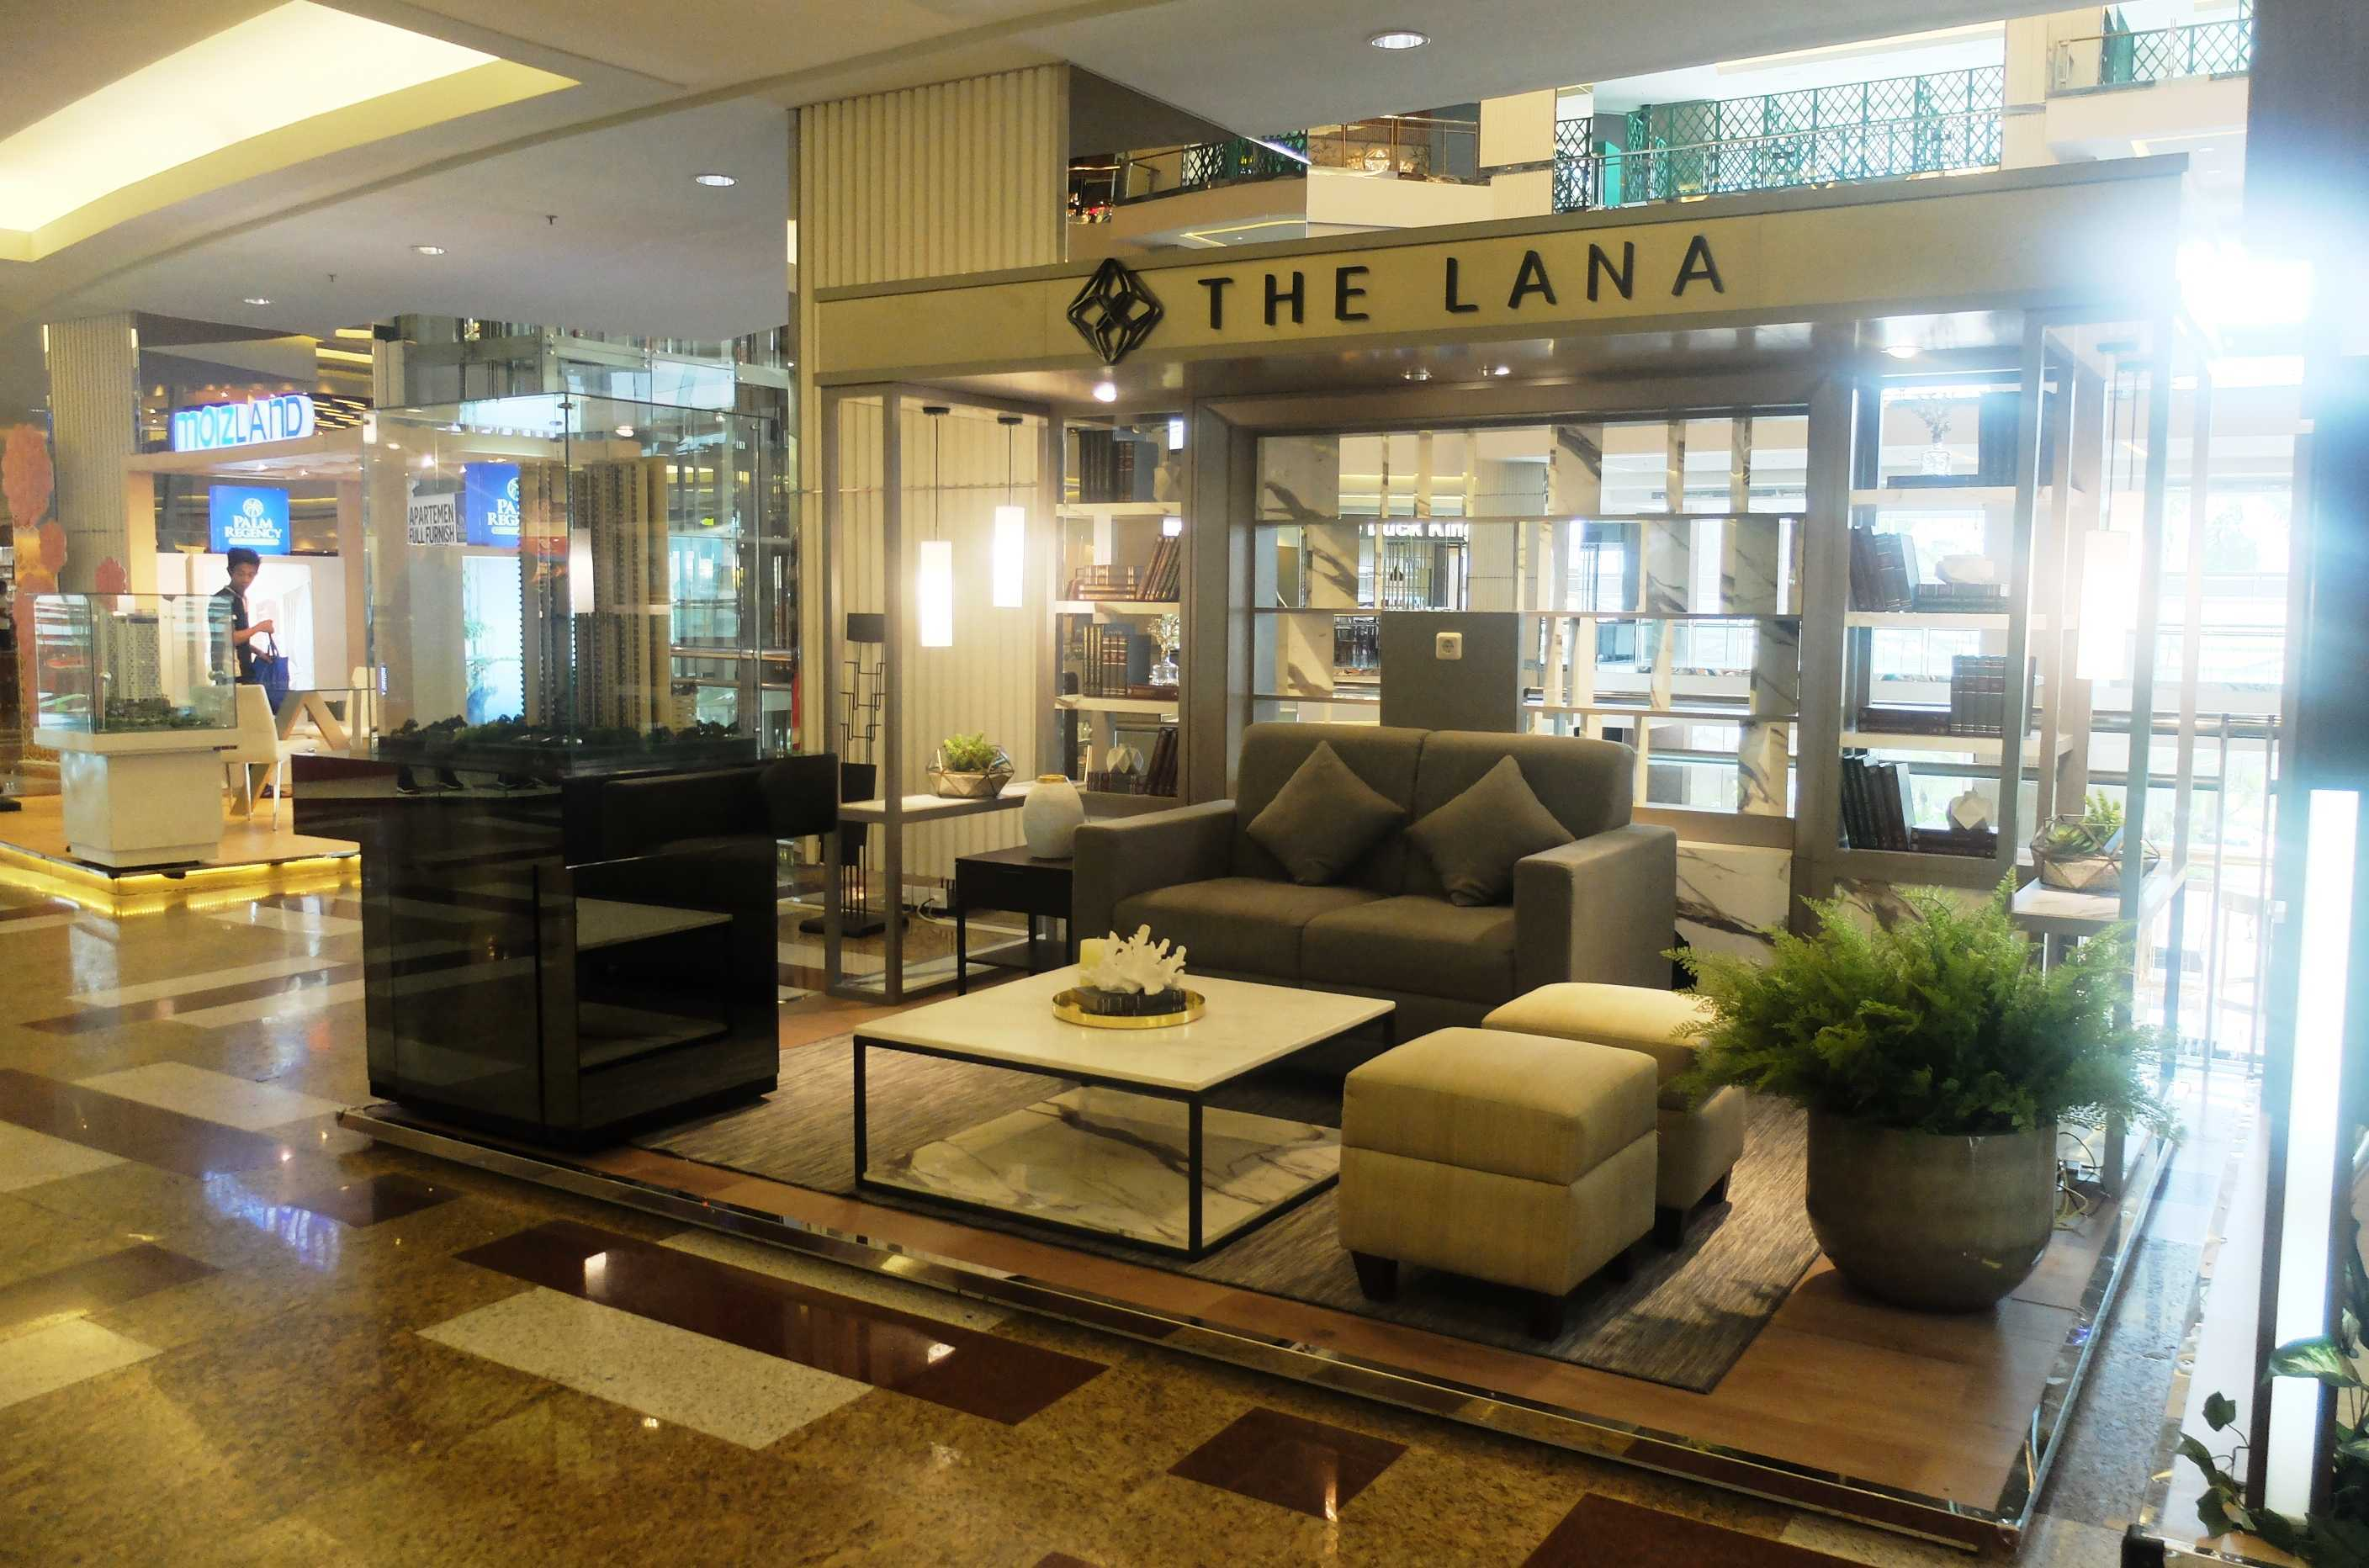 Pt. Modula The Lana Jakarta Jakarta Booth Type B Minimalis The Size Of The Booth's Space Is 4M X 3M 26313